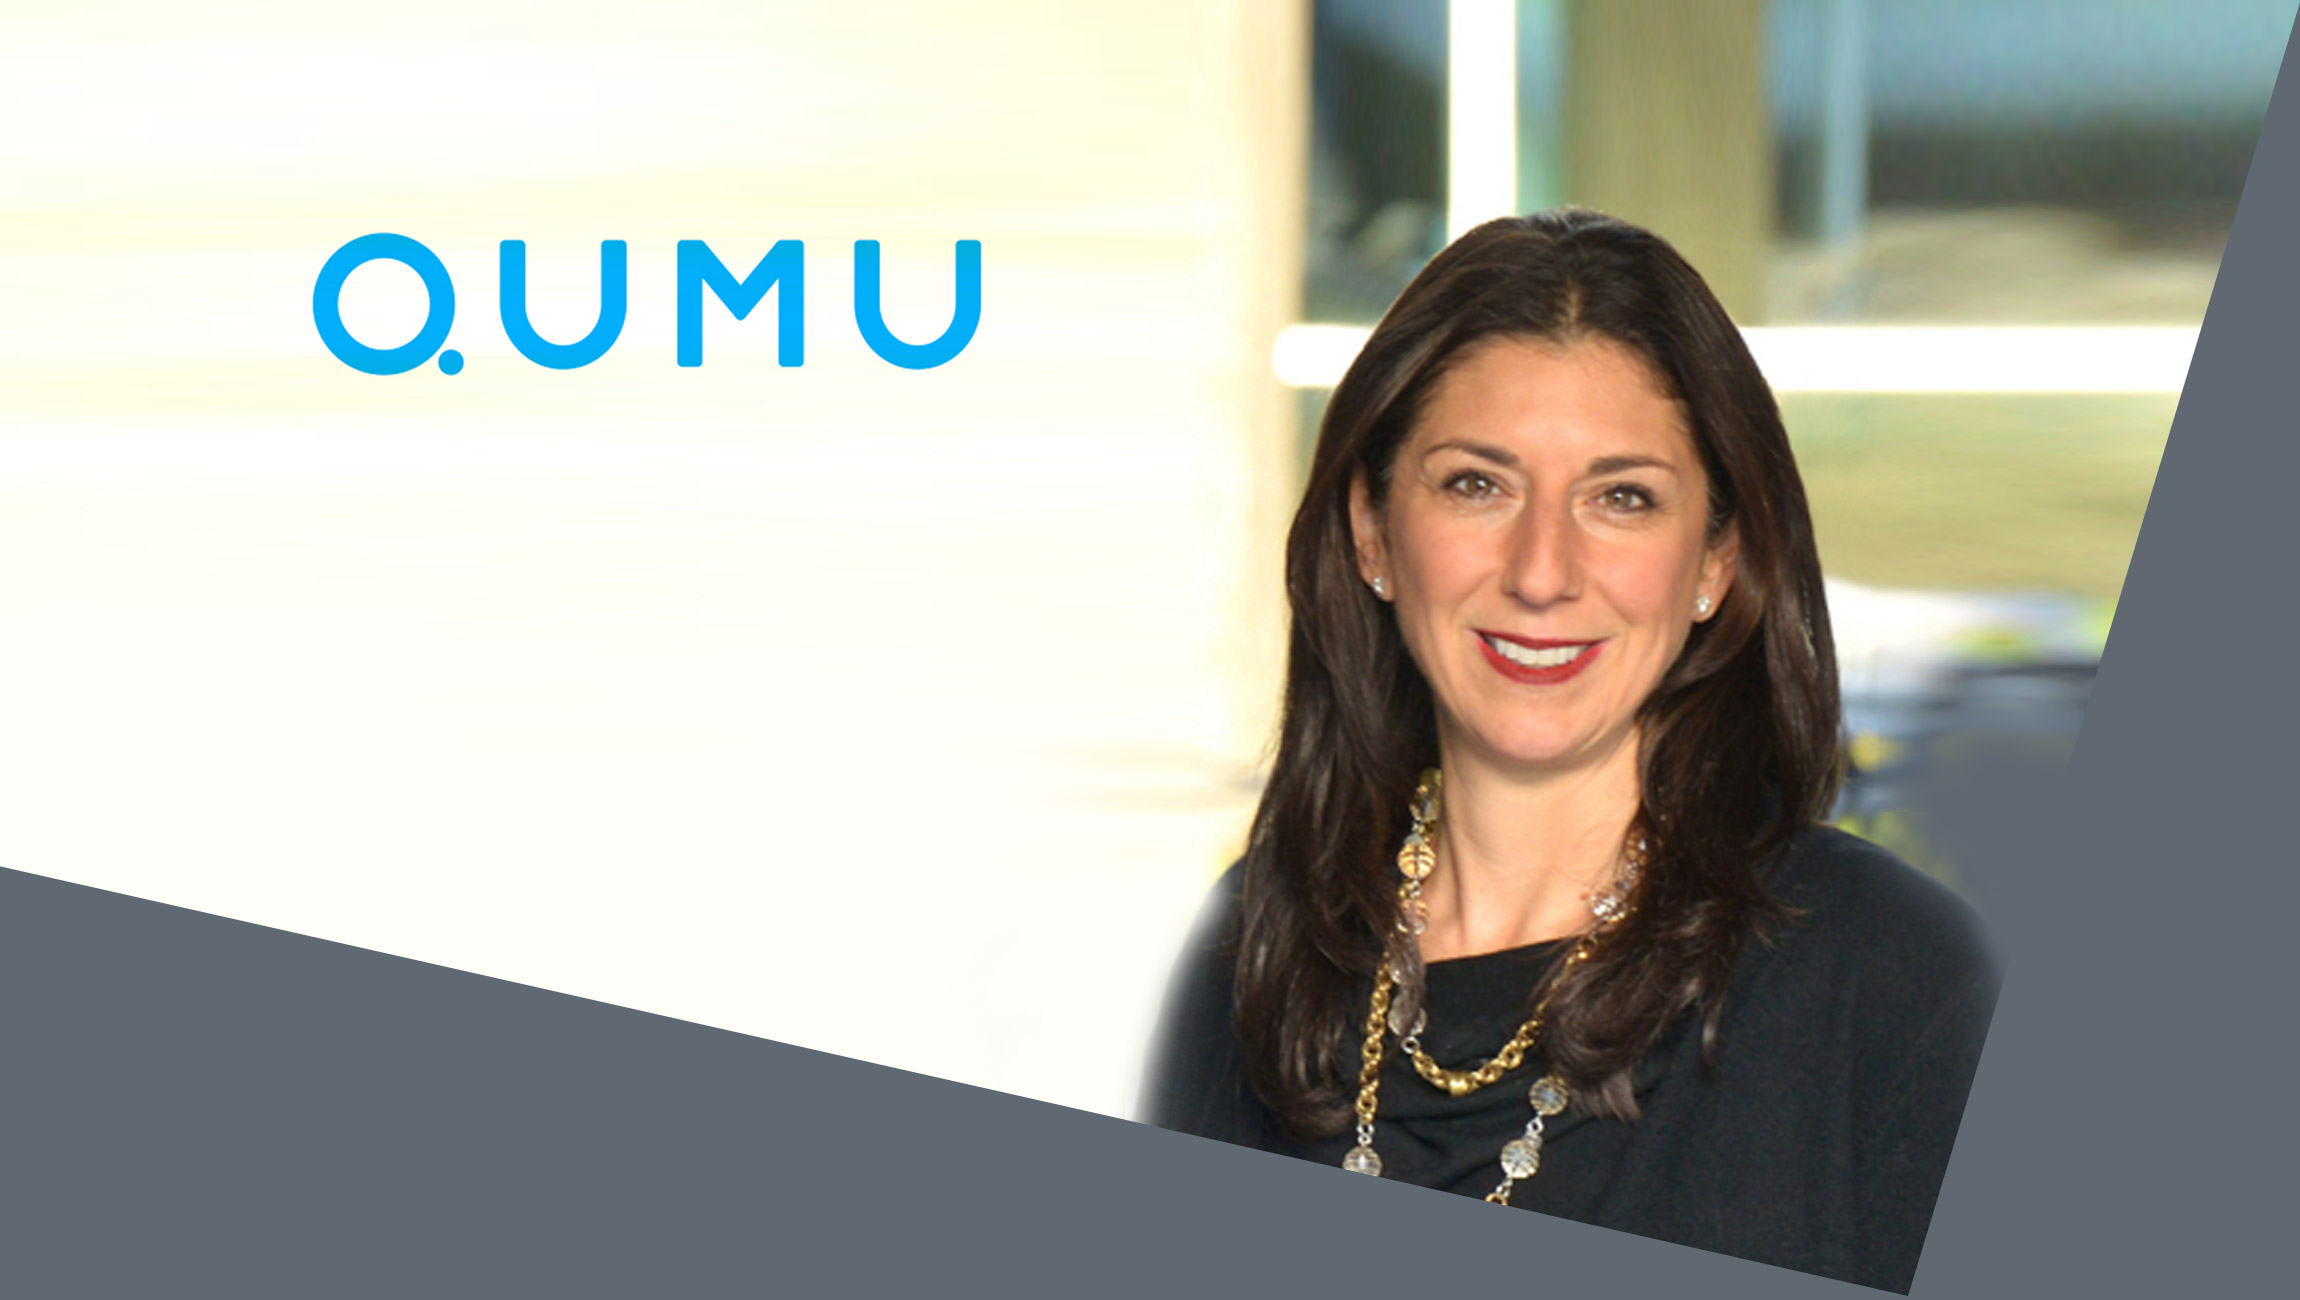 Qumu Hires Chief Revenue Officer to Drive Global Revenue Growth